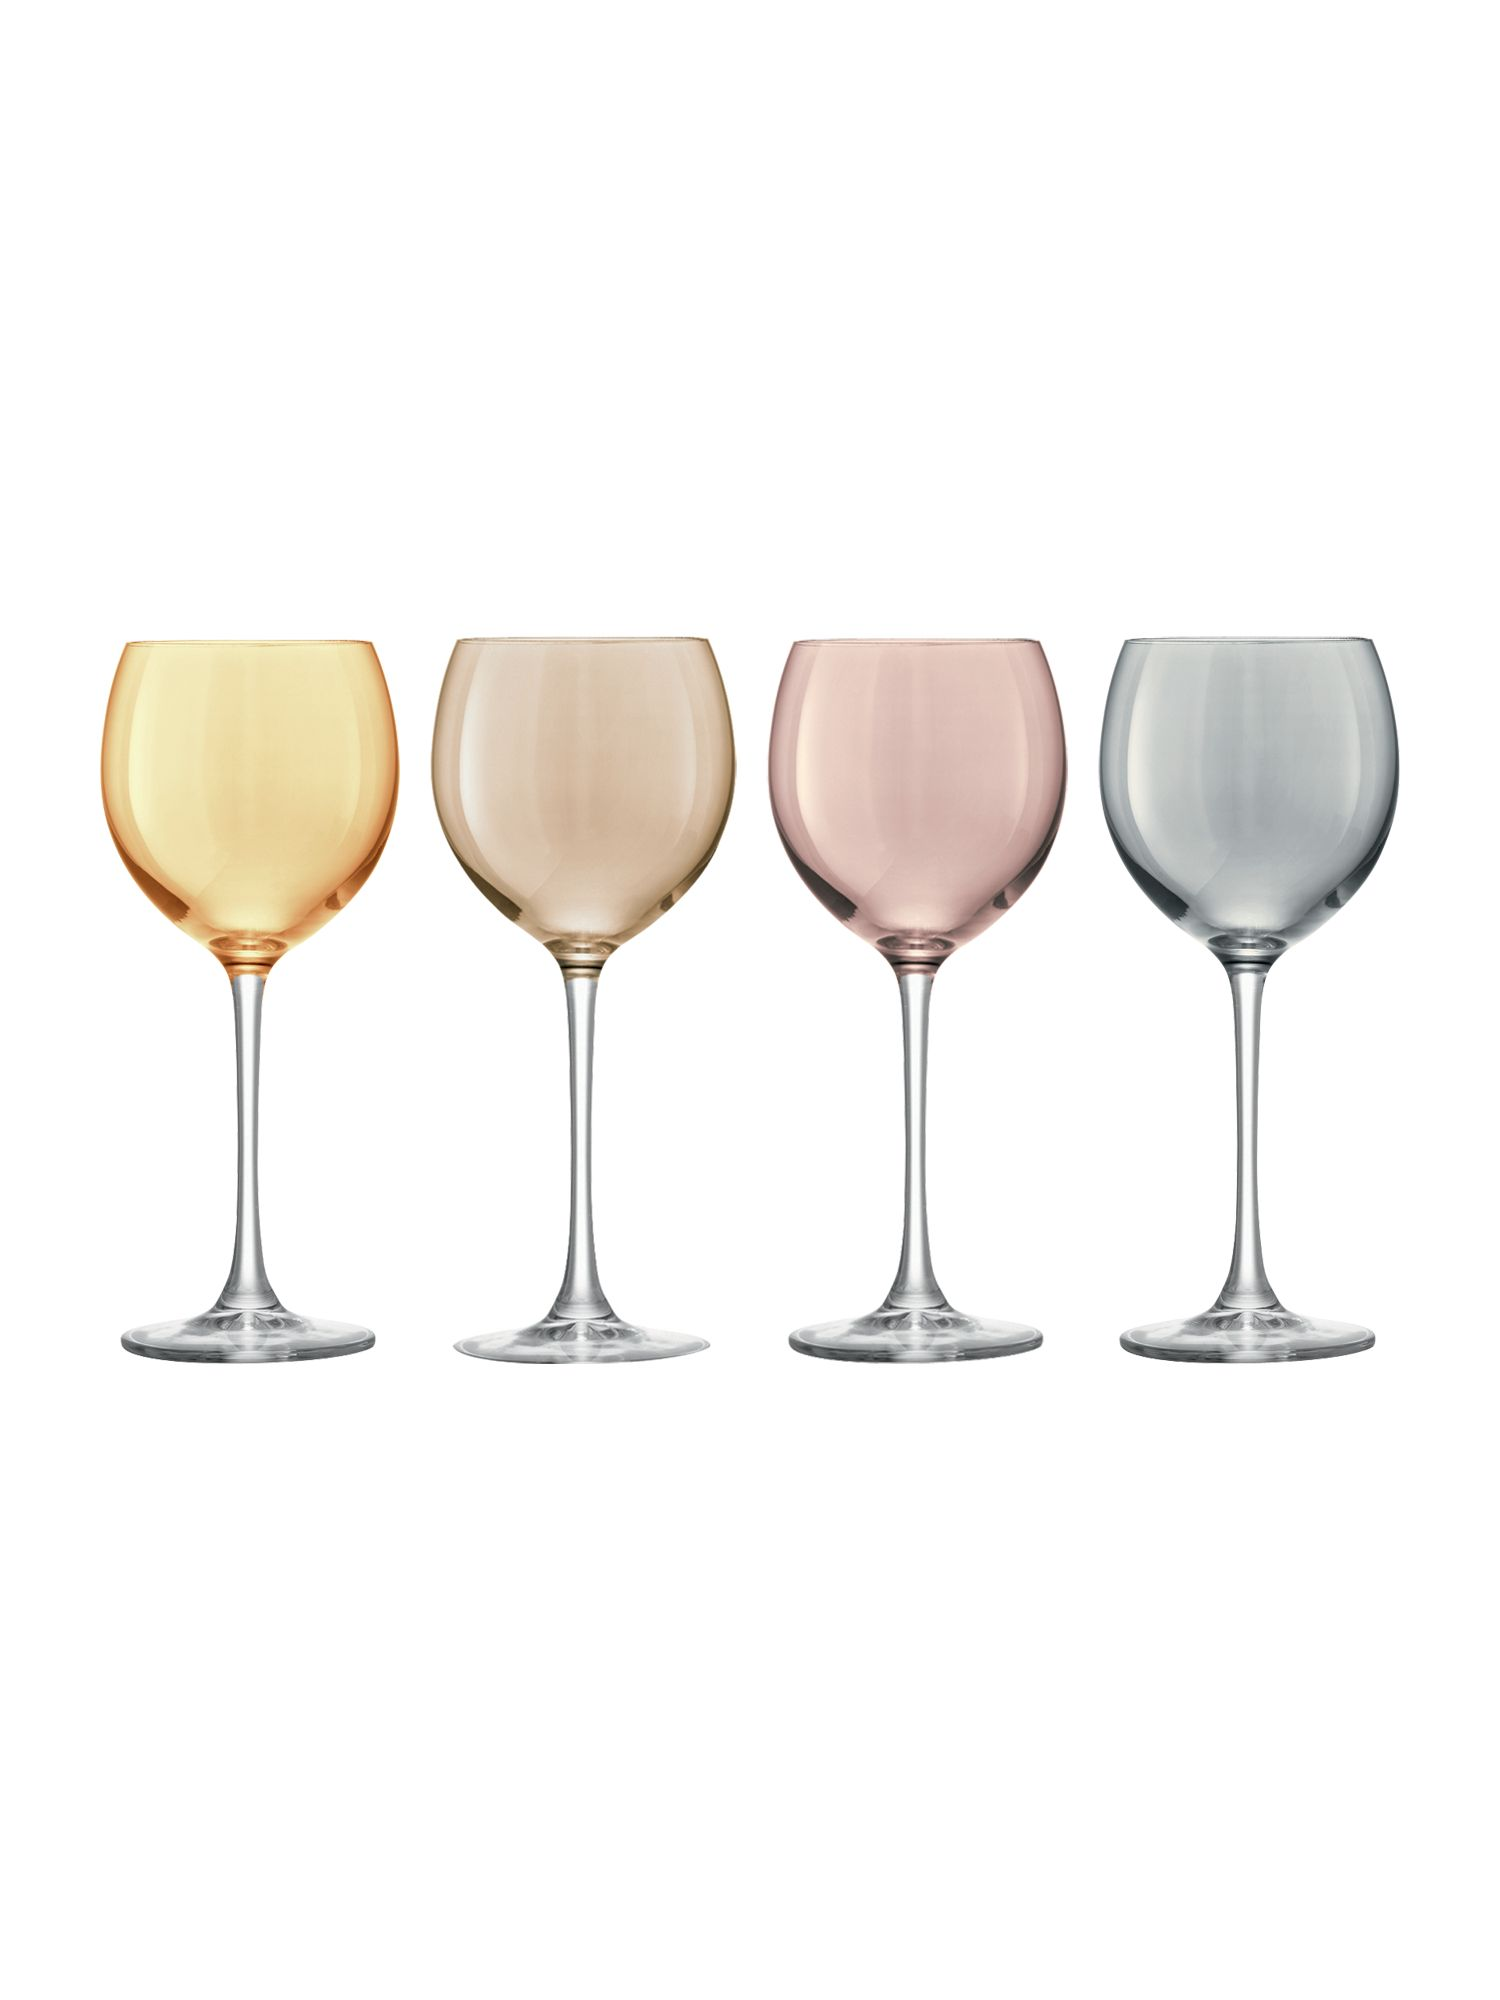 Polka wine glass set of 4